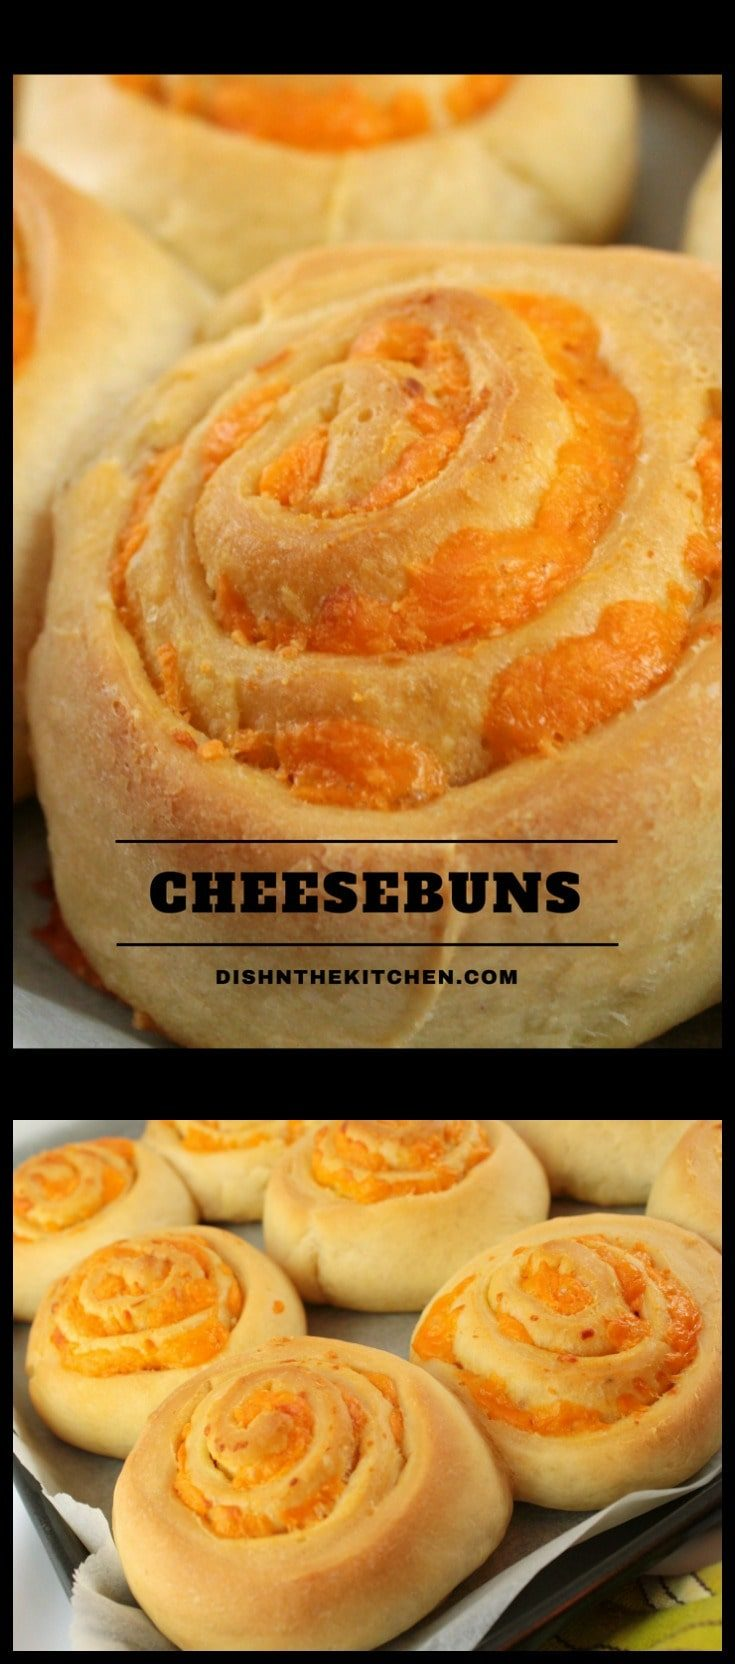 A tried and true recipe for the softest, cheesiest buns EVER. Try them as a side with a bowl of soup or tuck into school lunches for a cheesy treat. #baking #cheesebuns #buns #lunches